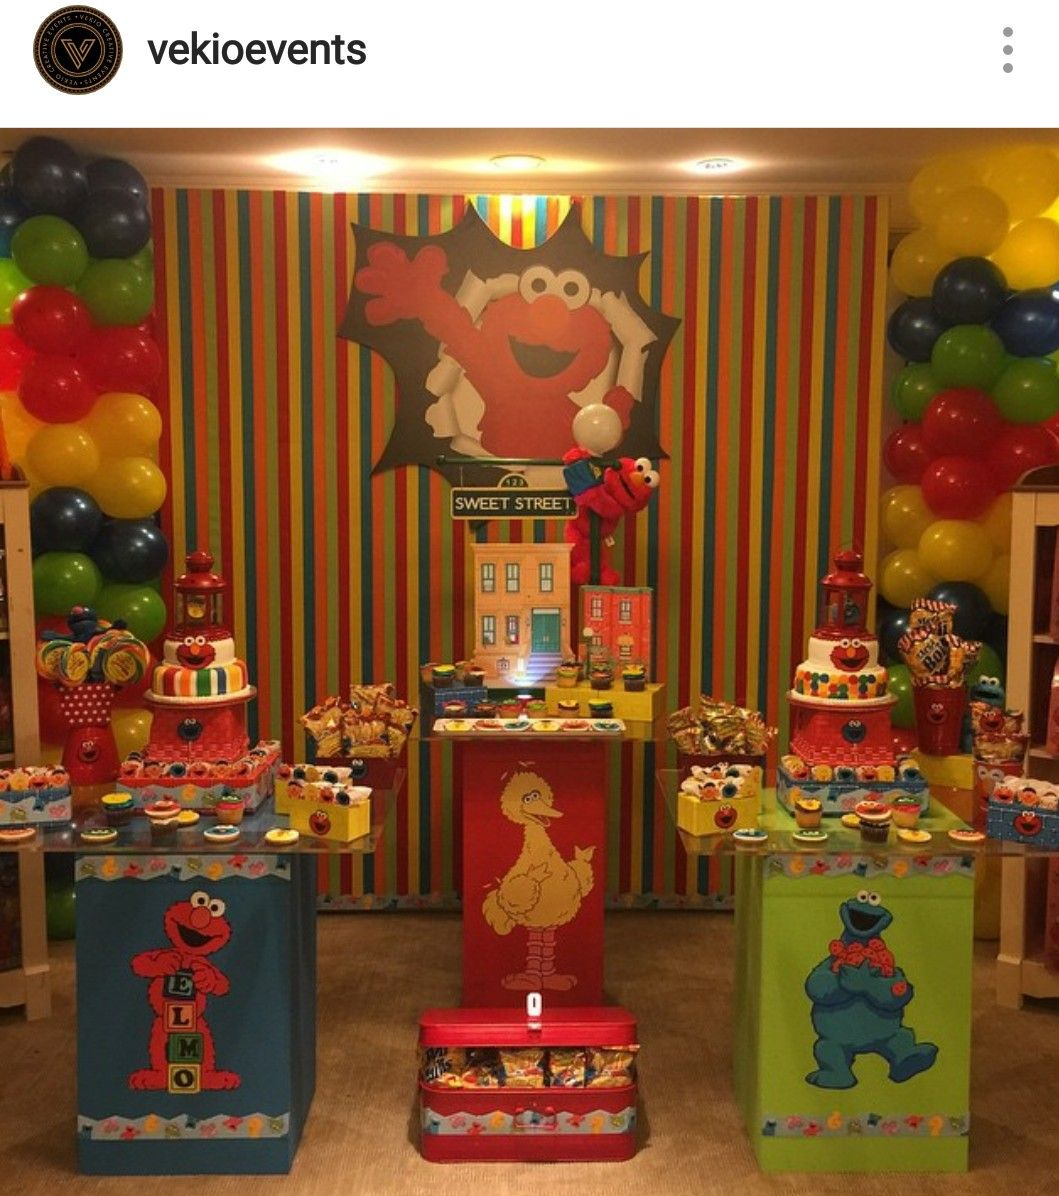 Elmo Theme Birthday Party Dessert Table and Decor : elmo decorations ideas - www.pureclipart.com